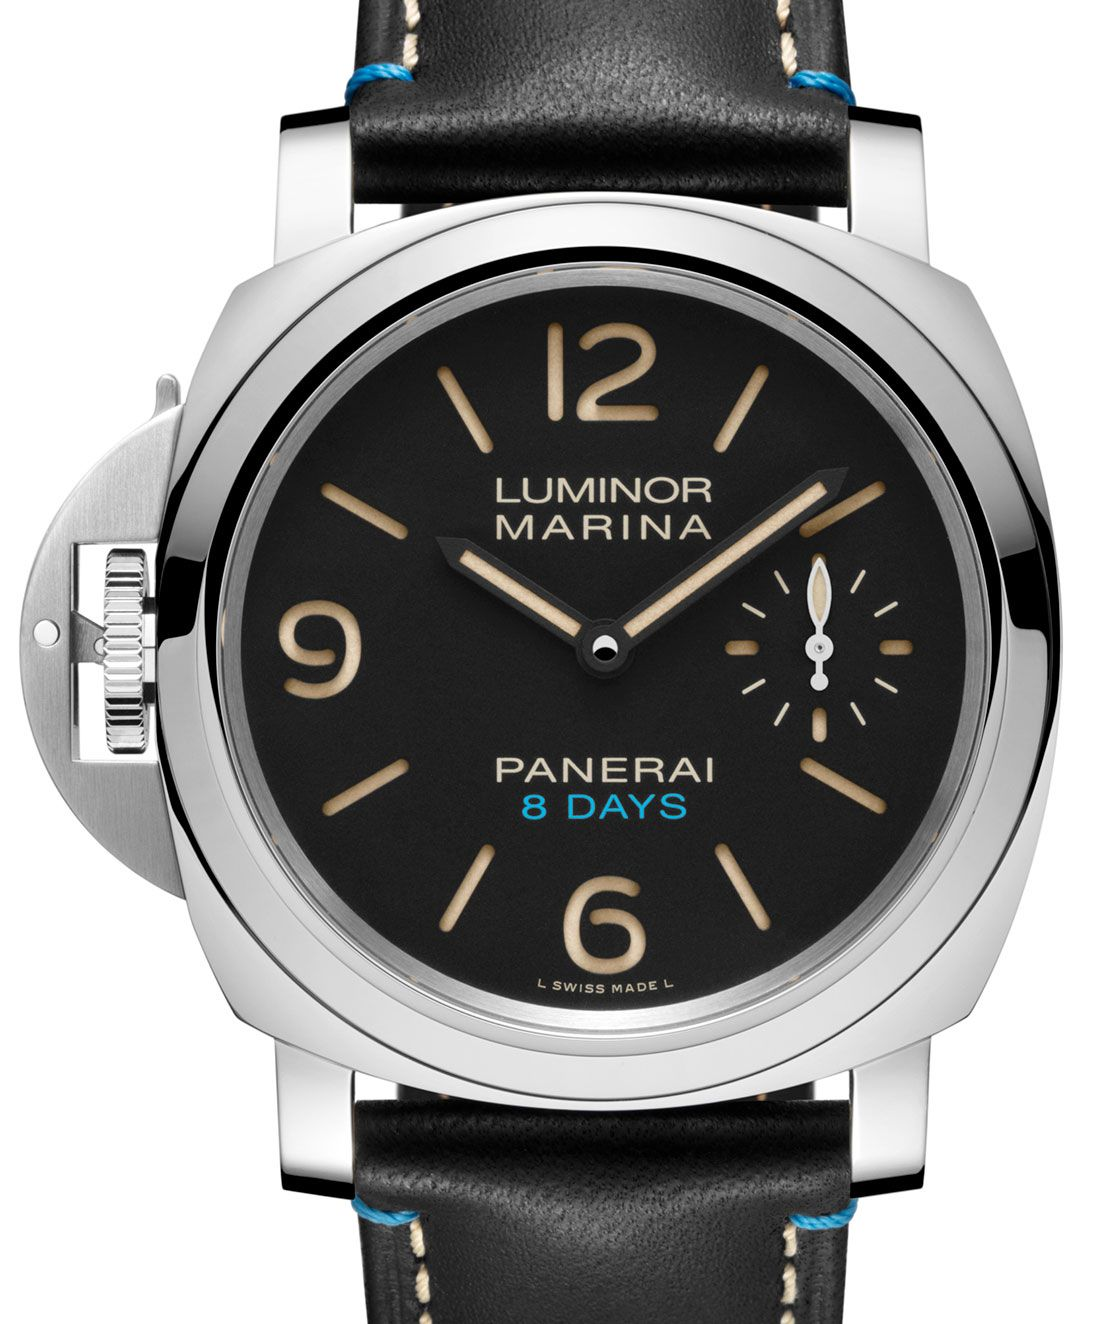 976c5e3038c Panerai Luminor Marina 8-Days Power Reserve Left-Hand PAM796 Watch  panerai   watches  luminor  menswatches